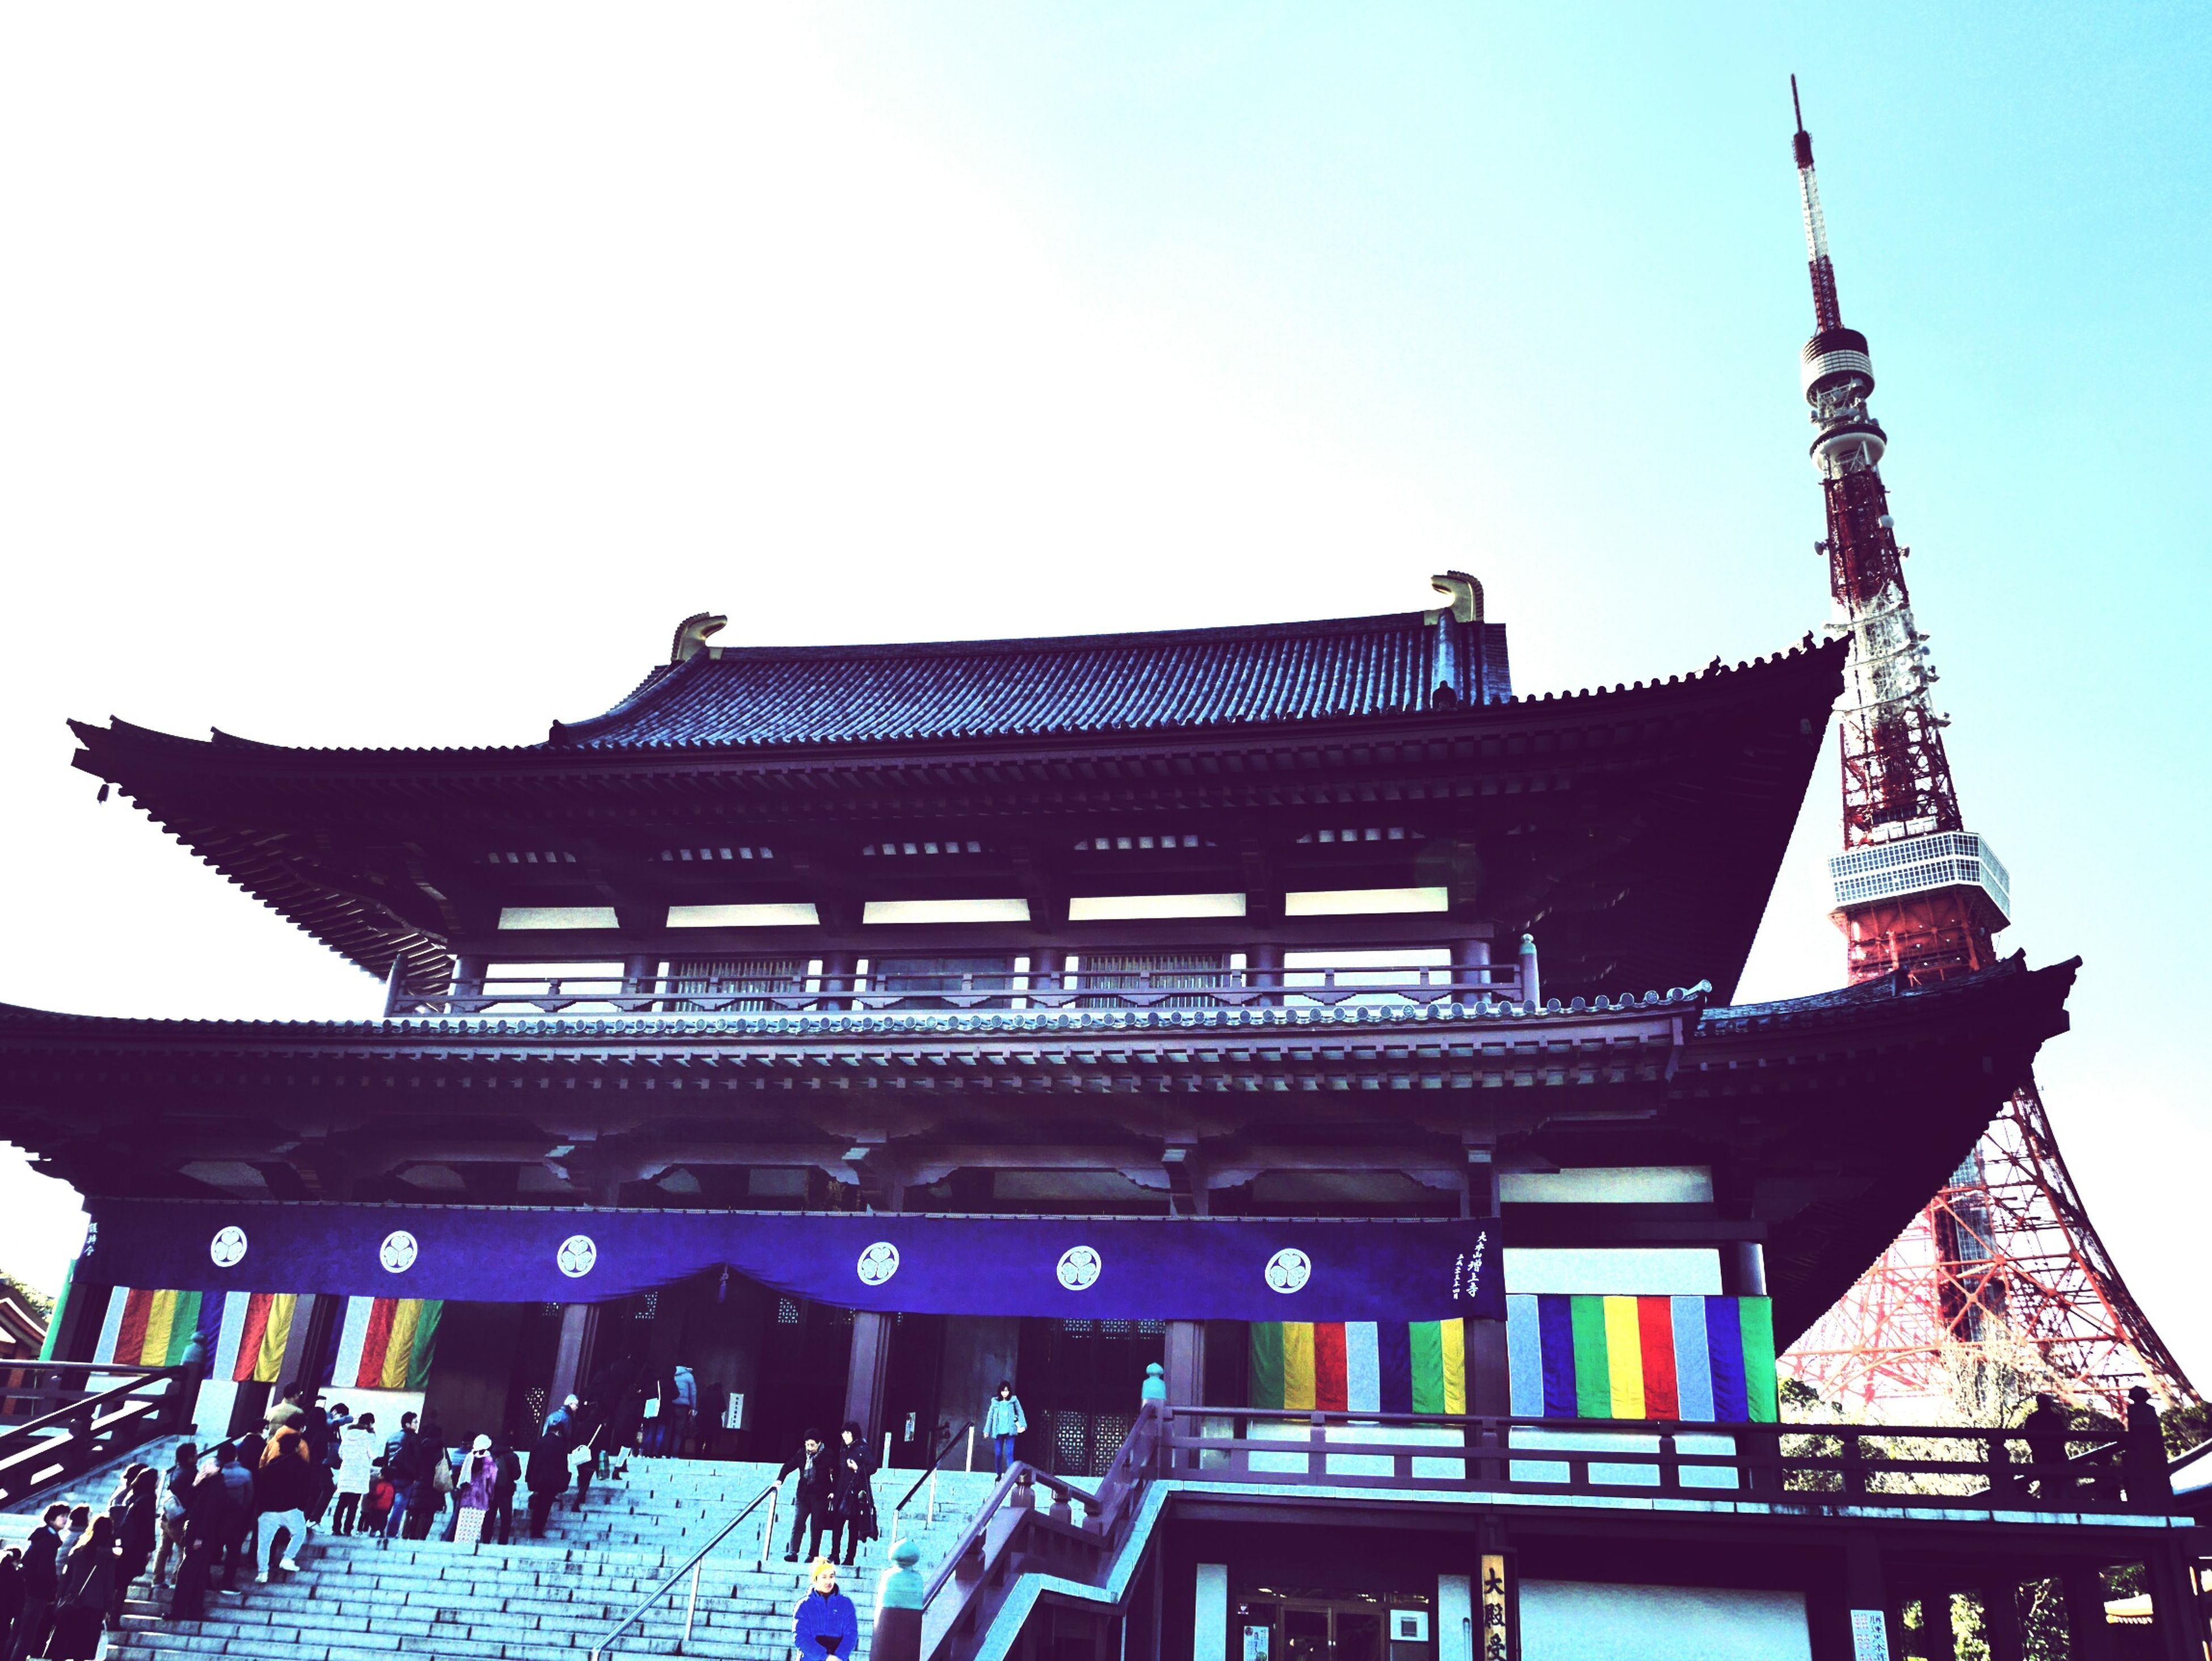 built structure, architecture, low angle view, building exterior, clear sky, sky, large group of people, travel destinations, famous place, tourism, men, person, copy space, lifestyles, travel, outdoors, leisure activity, international landmark, arts culture and entertainment